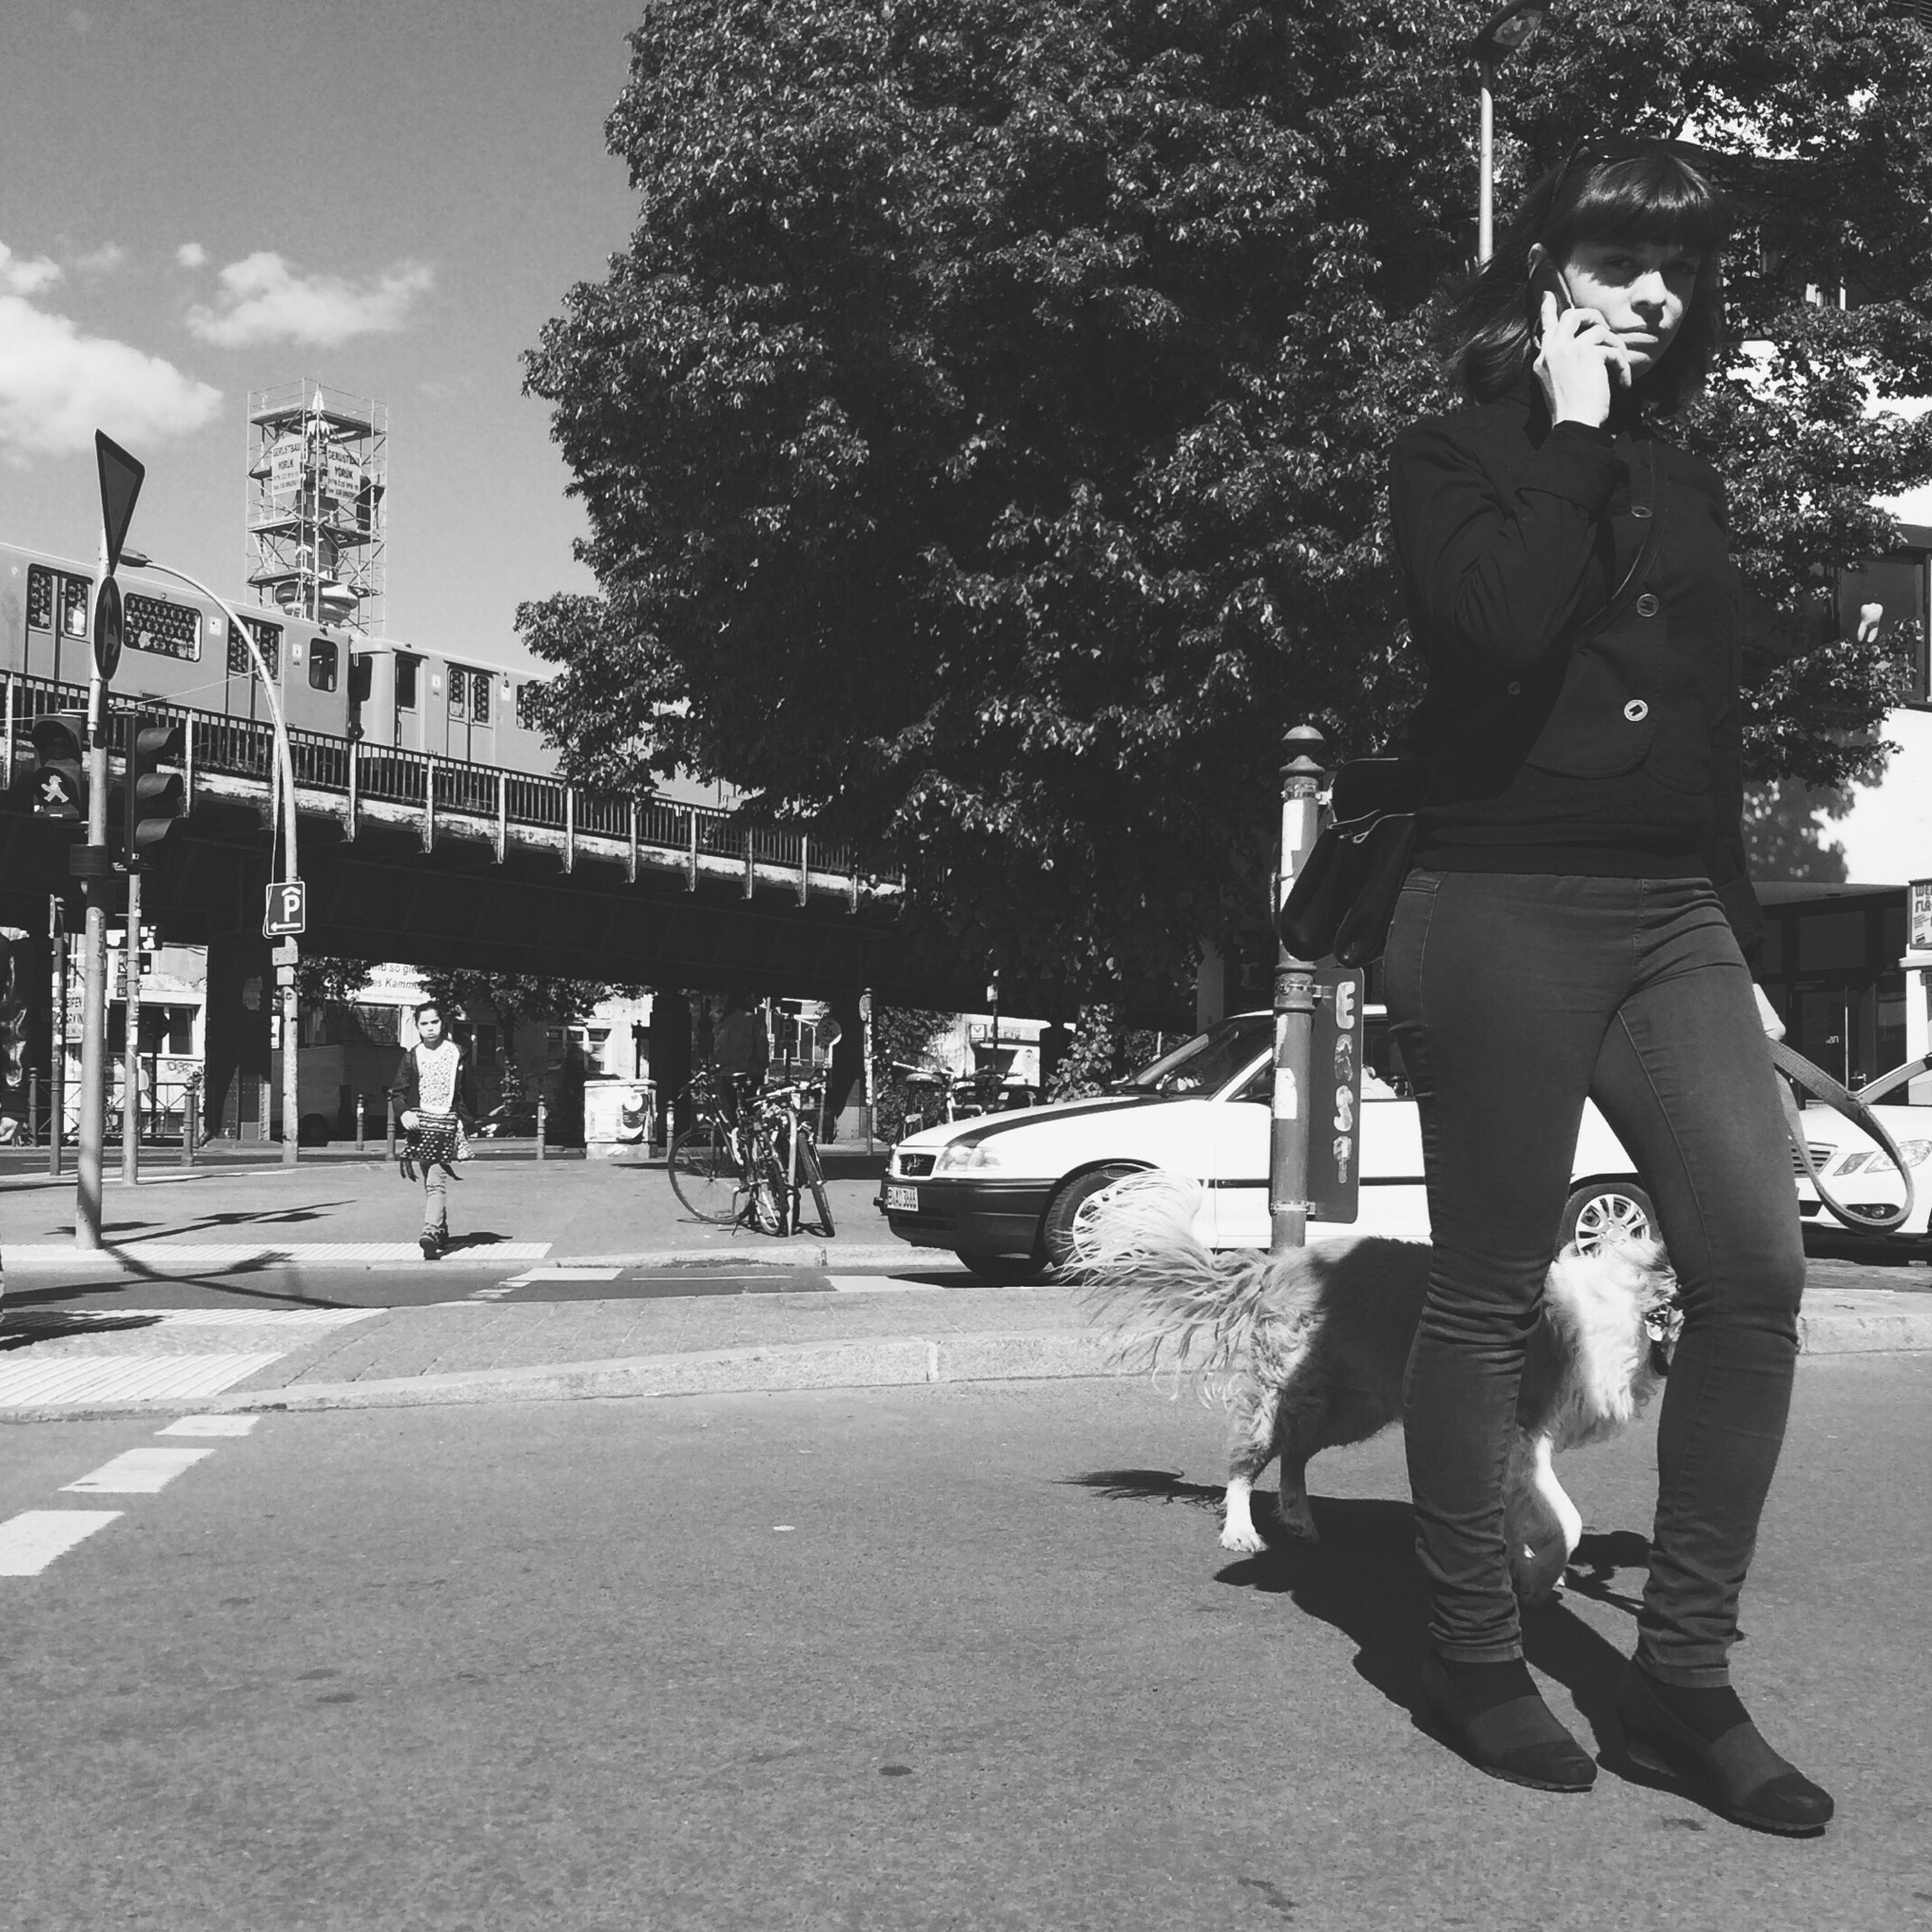 tree, full length, lifestyles, leisure activity, casual clothing, street, men, rear view, sunlight, shadow, walking, childhood, day, road, park - man made space, outdoors, person, sky